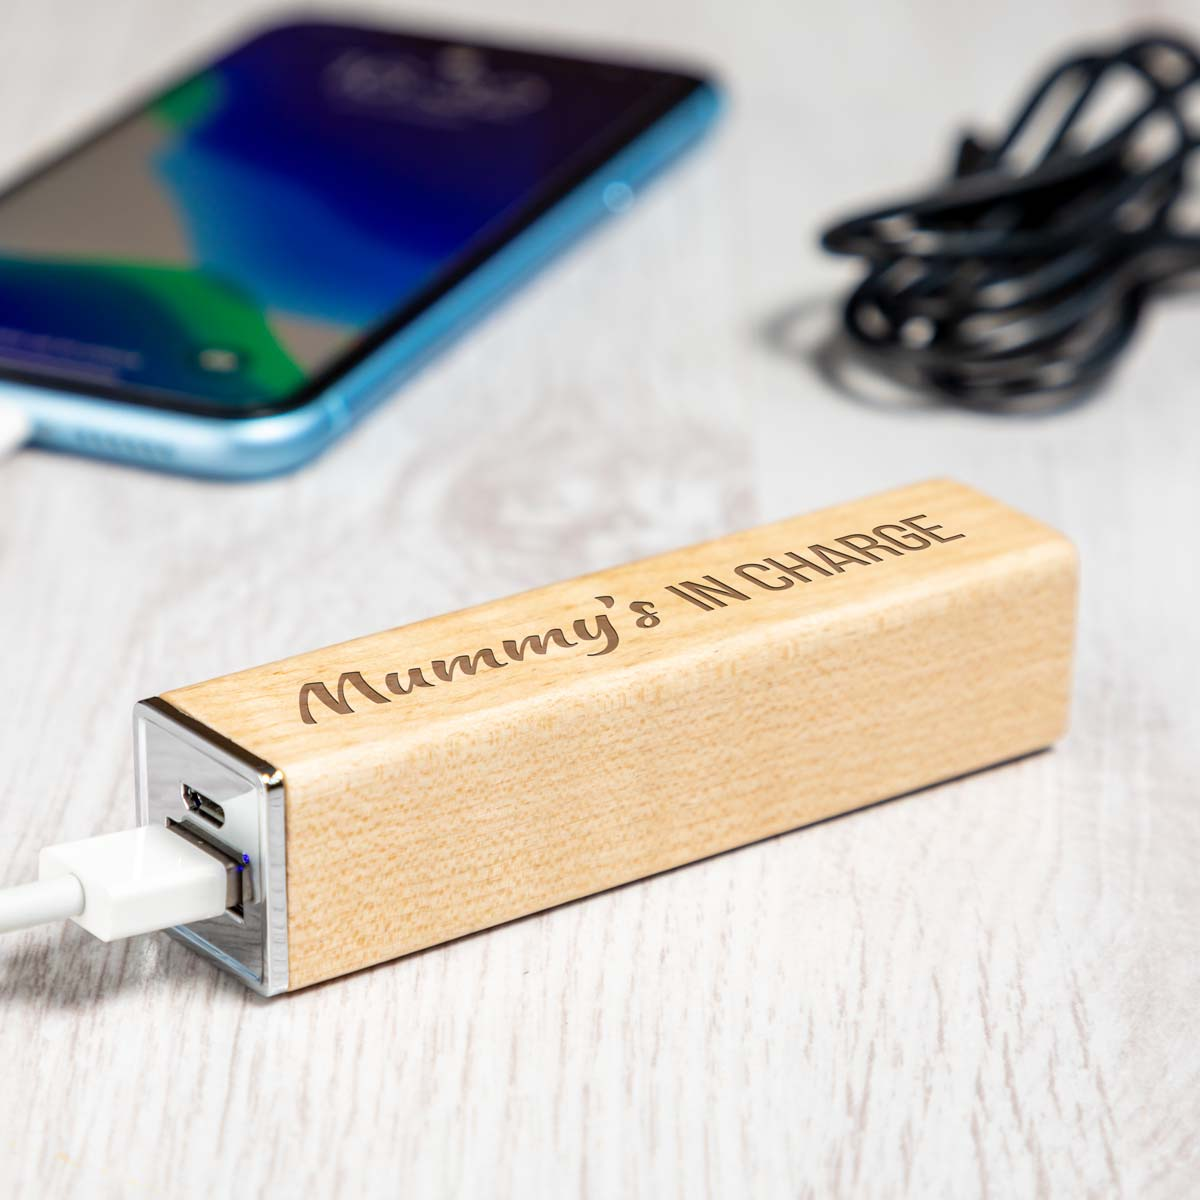 Personalised In Charge Power Bank